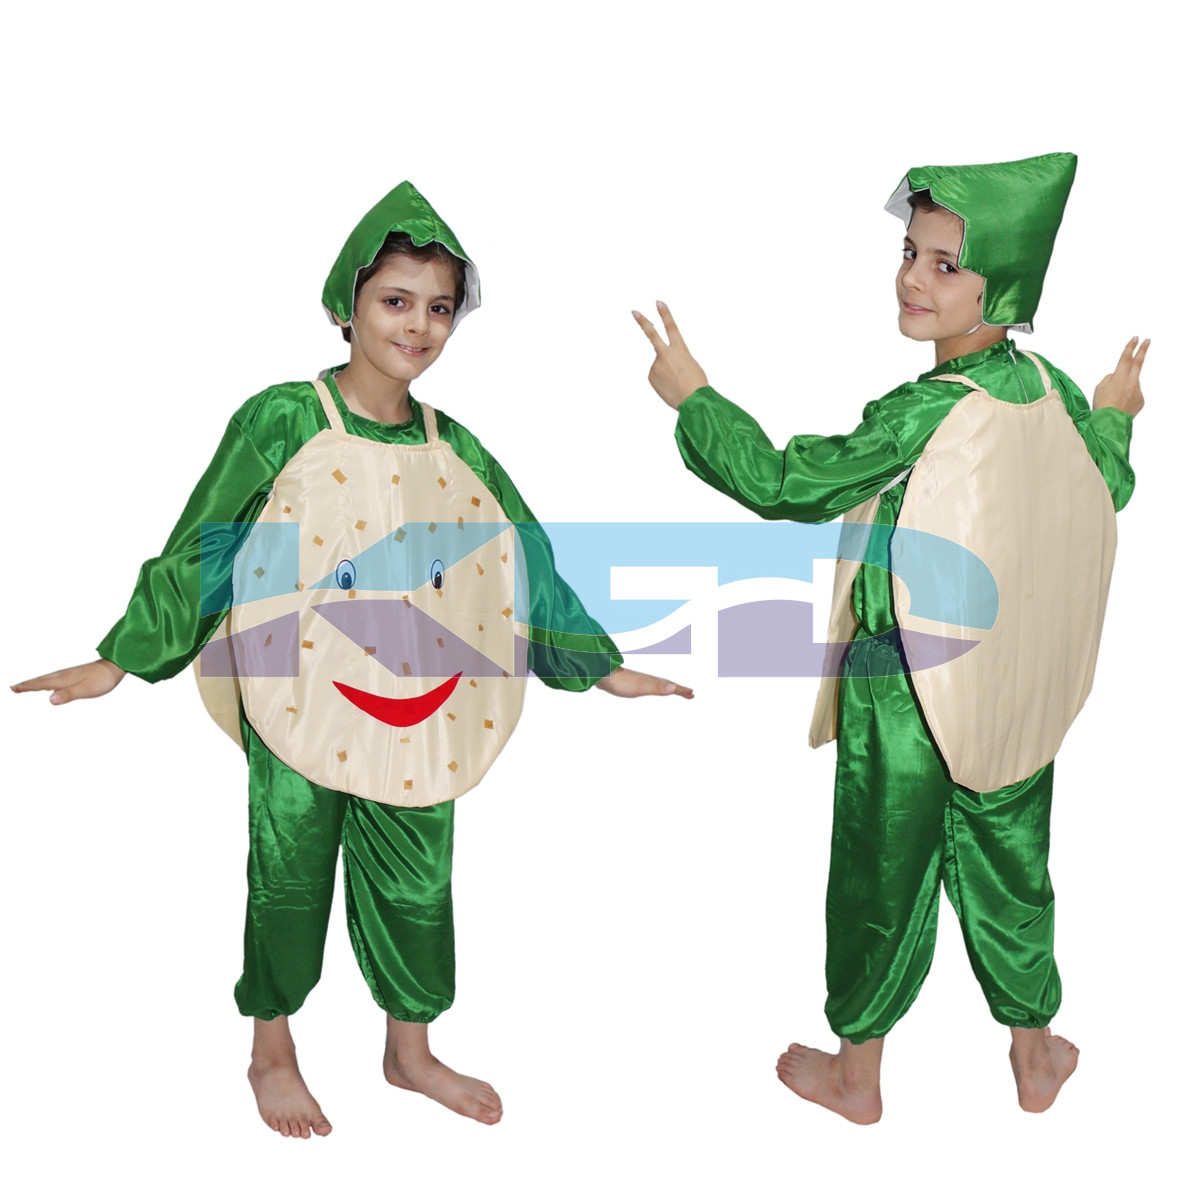 Potato fancy dress for kids,Vegetables Costume for School Annual function/Theme Party/Competition/Stage Shows Dress